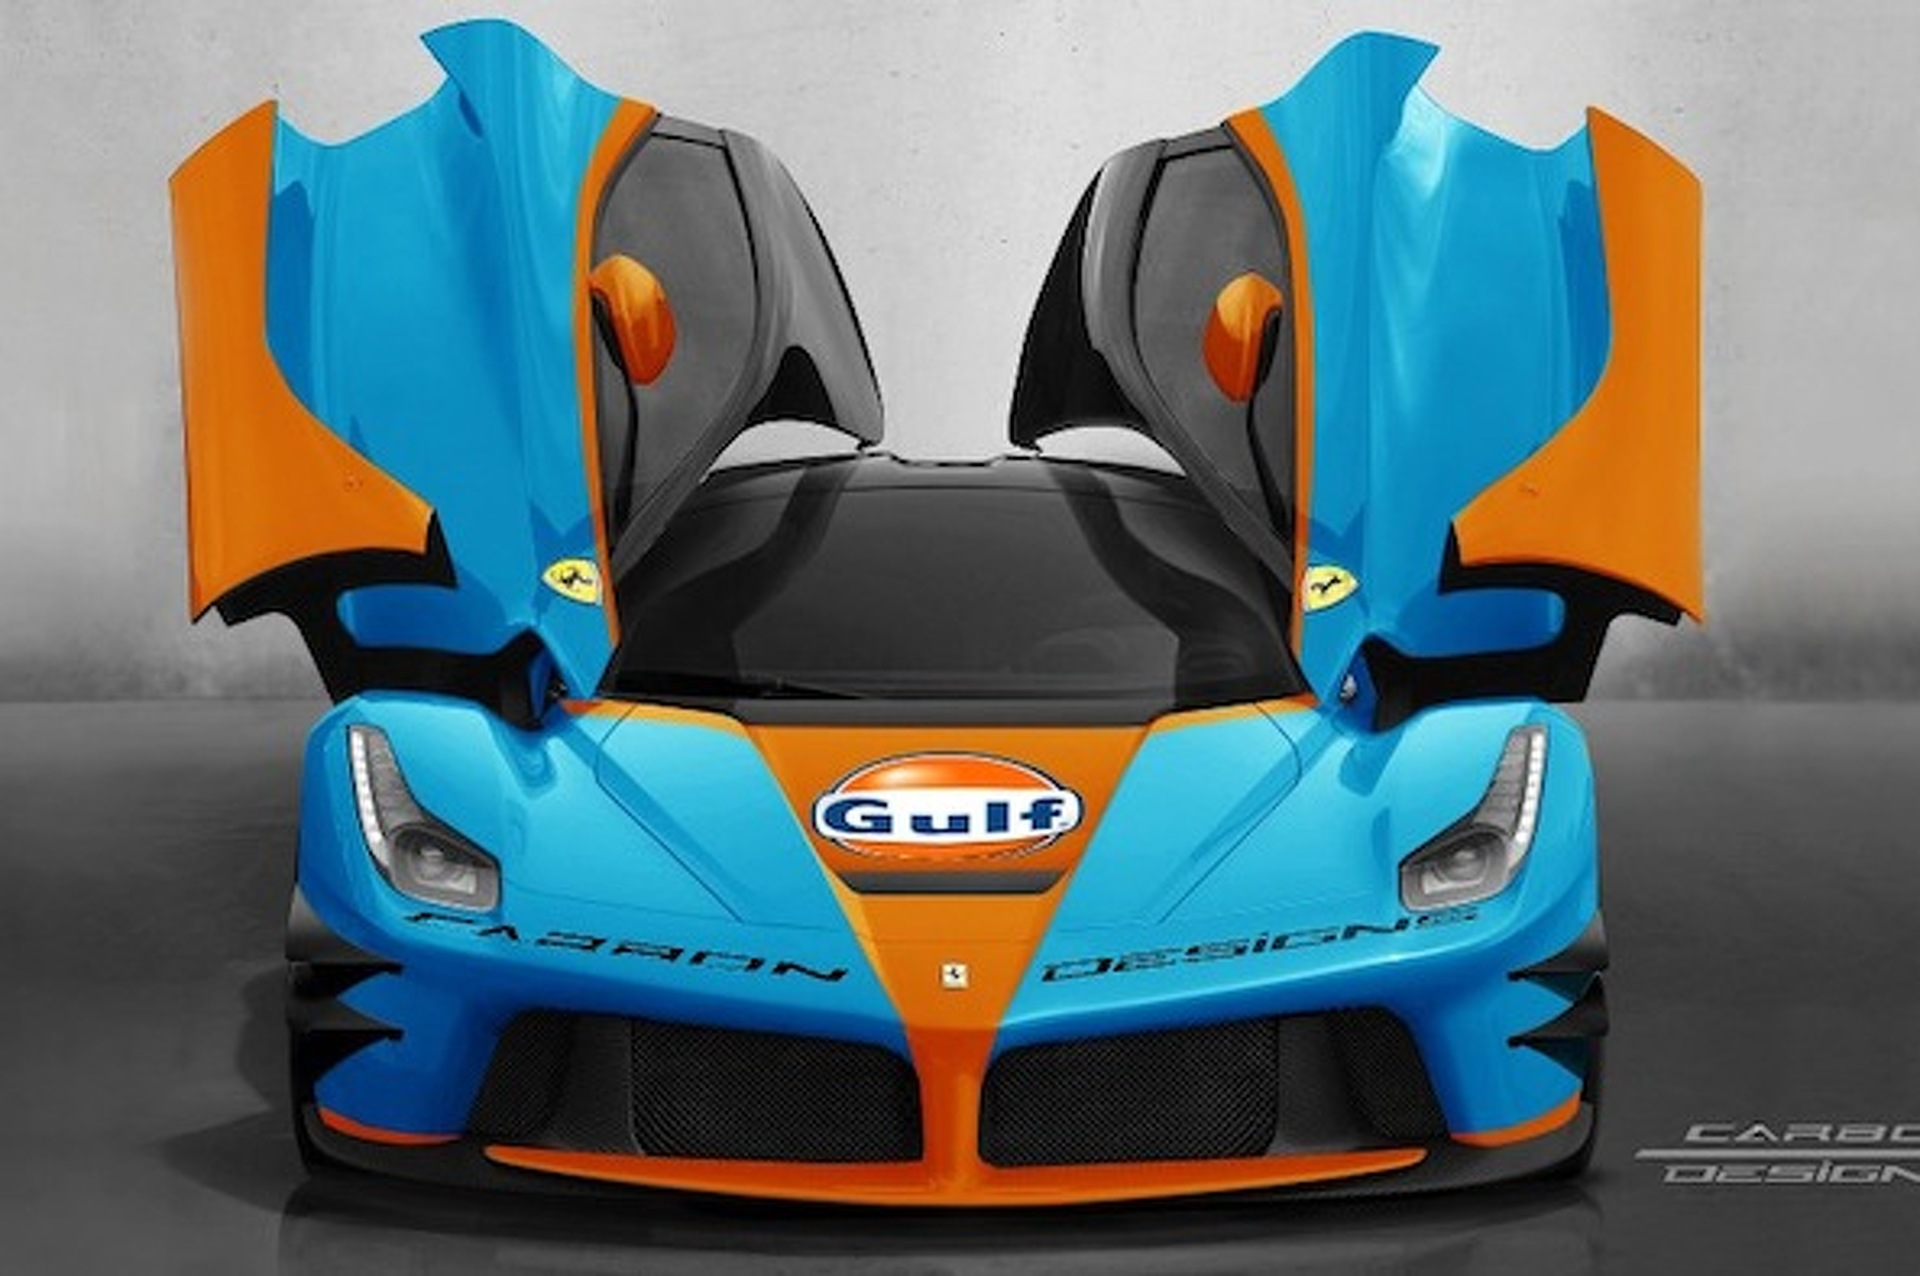 LaFerrari Sports Gulf Racing Livery